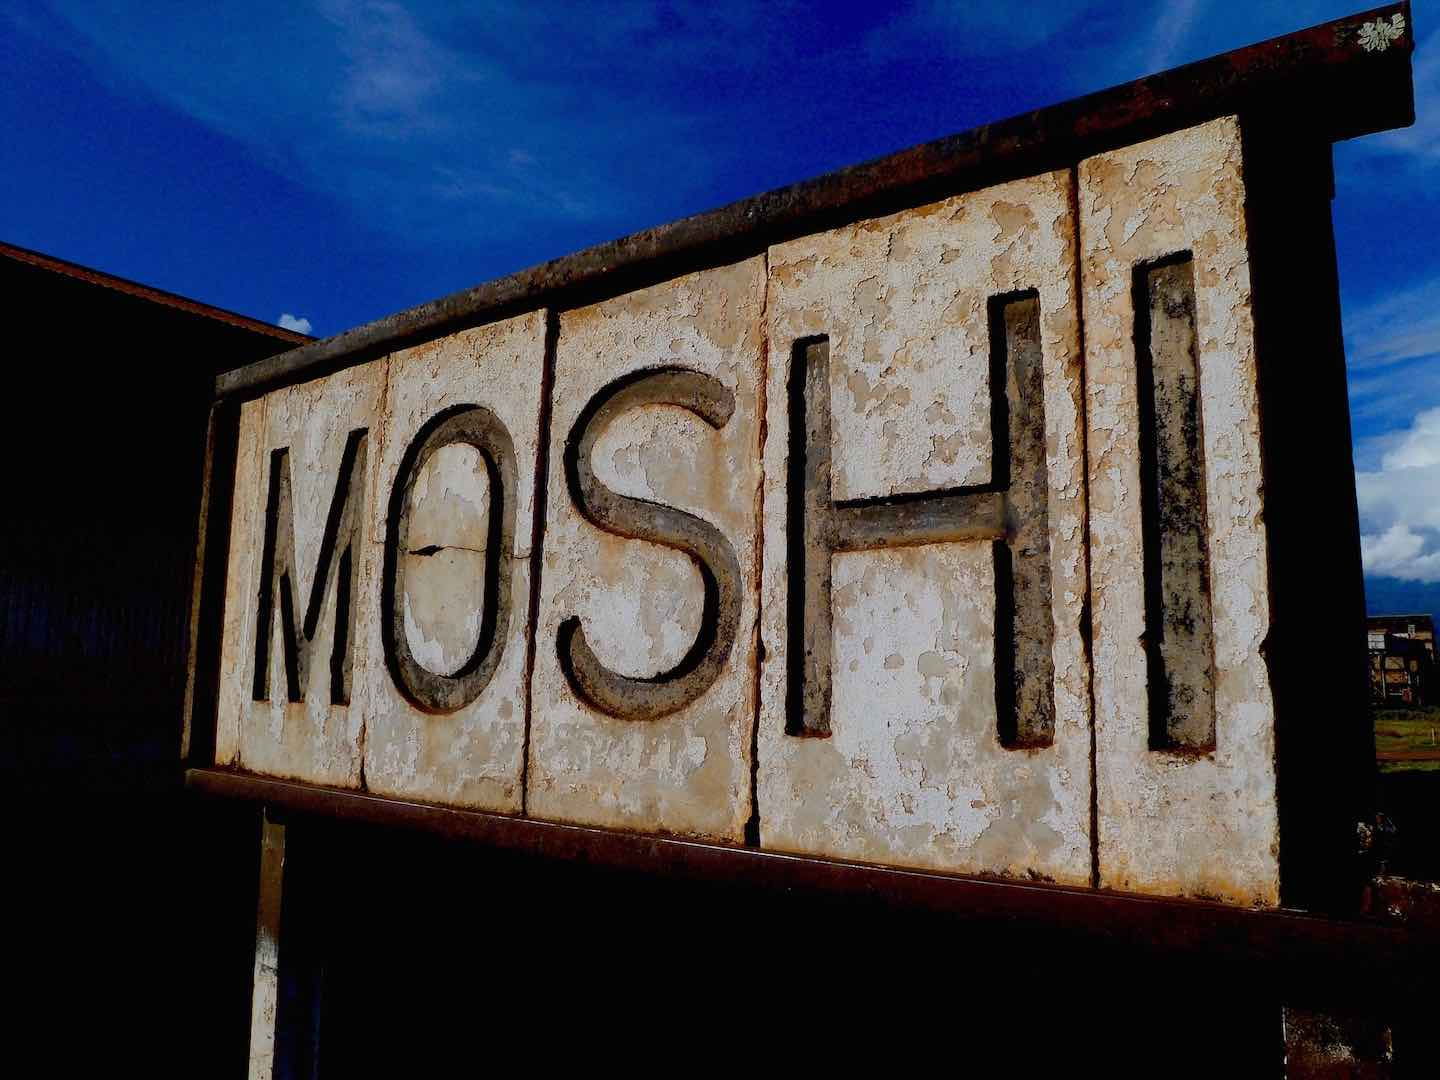 Moshi Things to Do